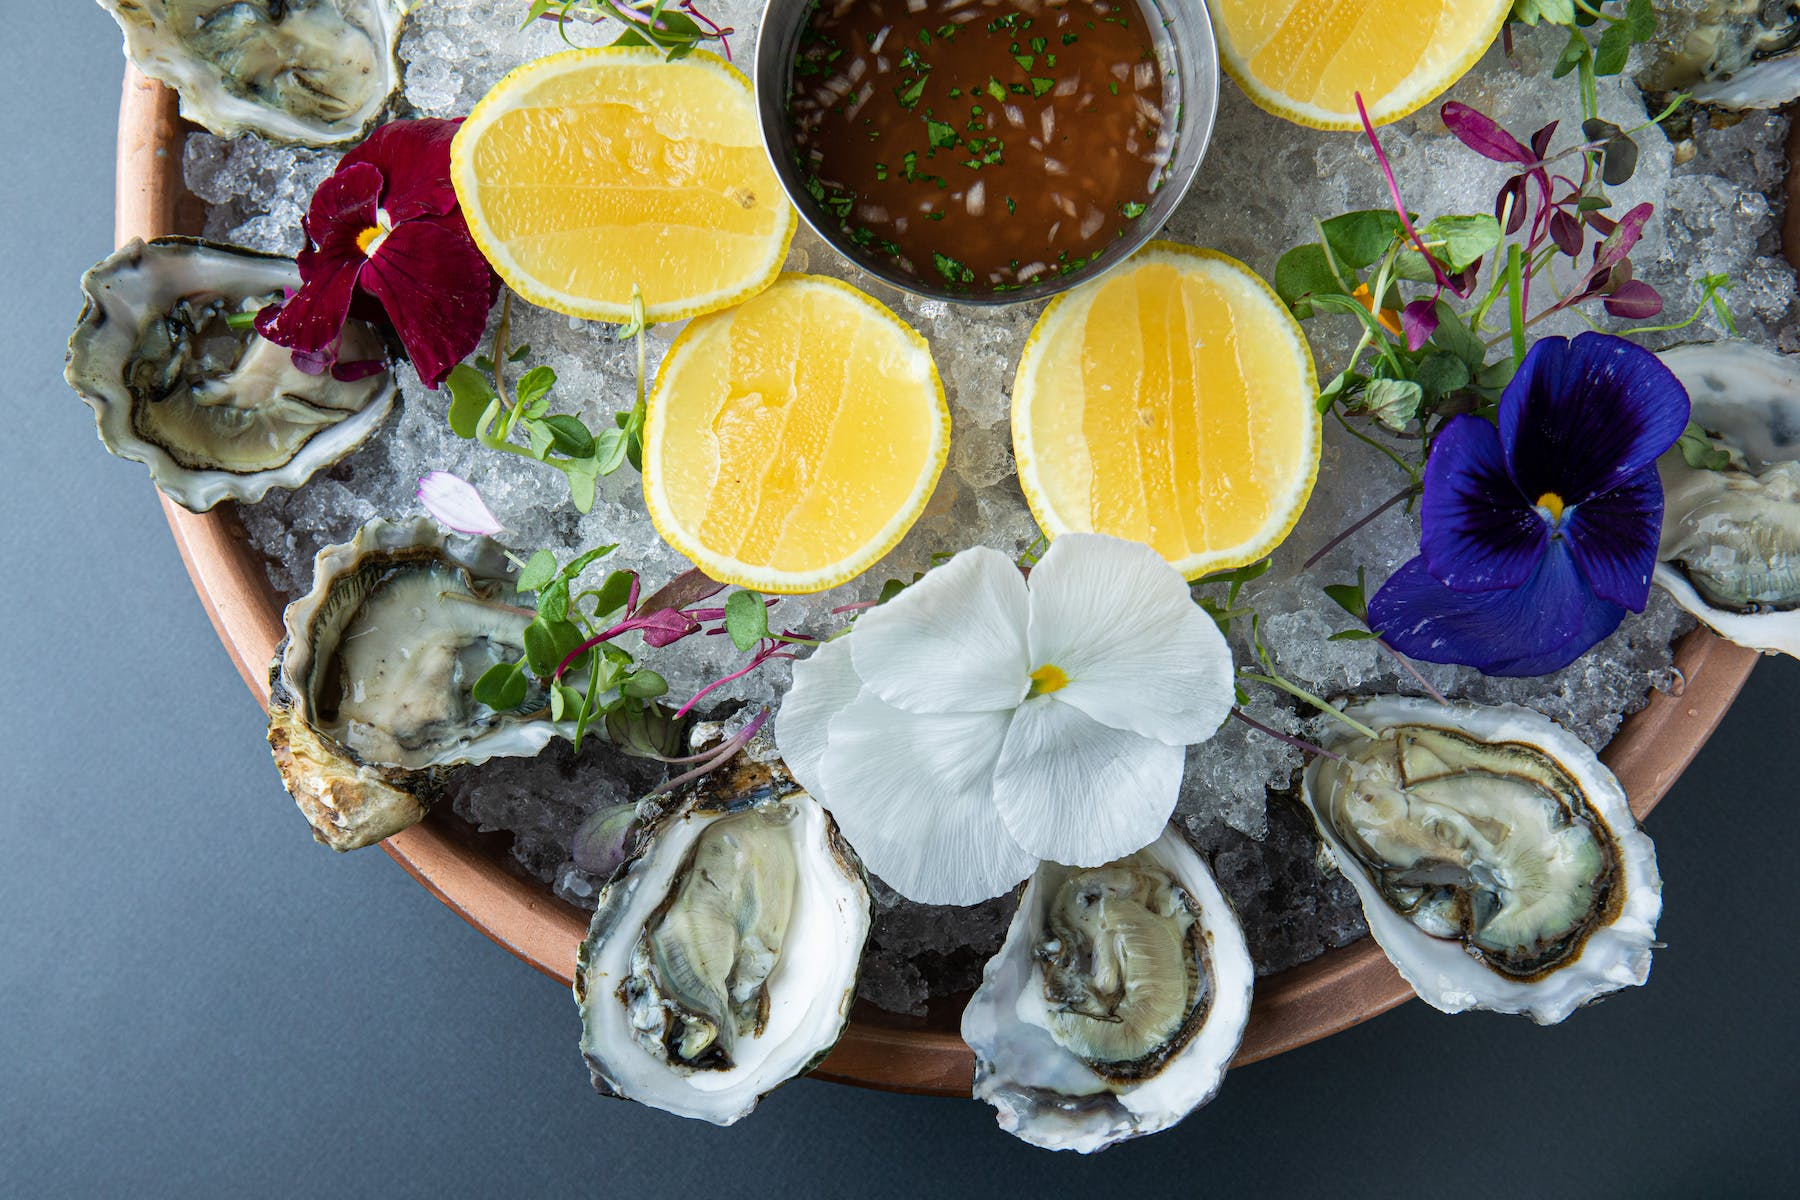 a plate filled with ice and oysters